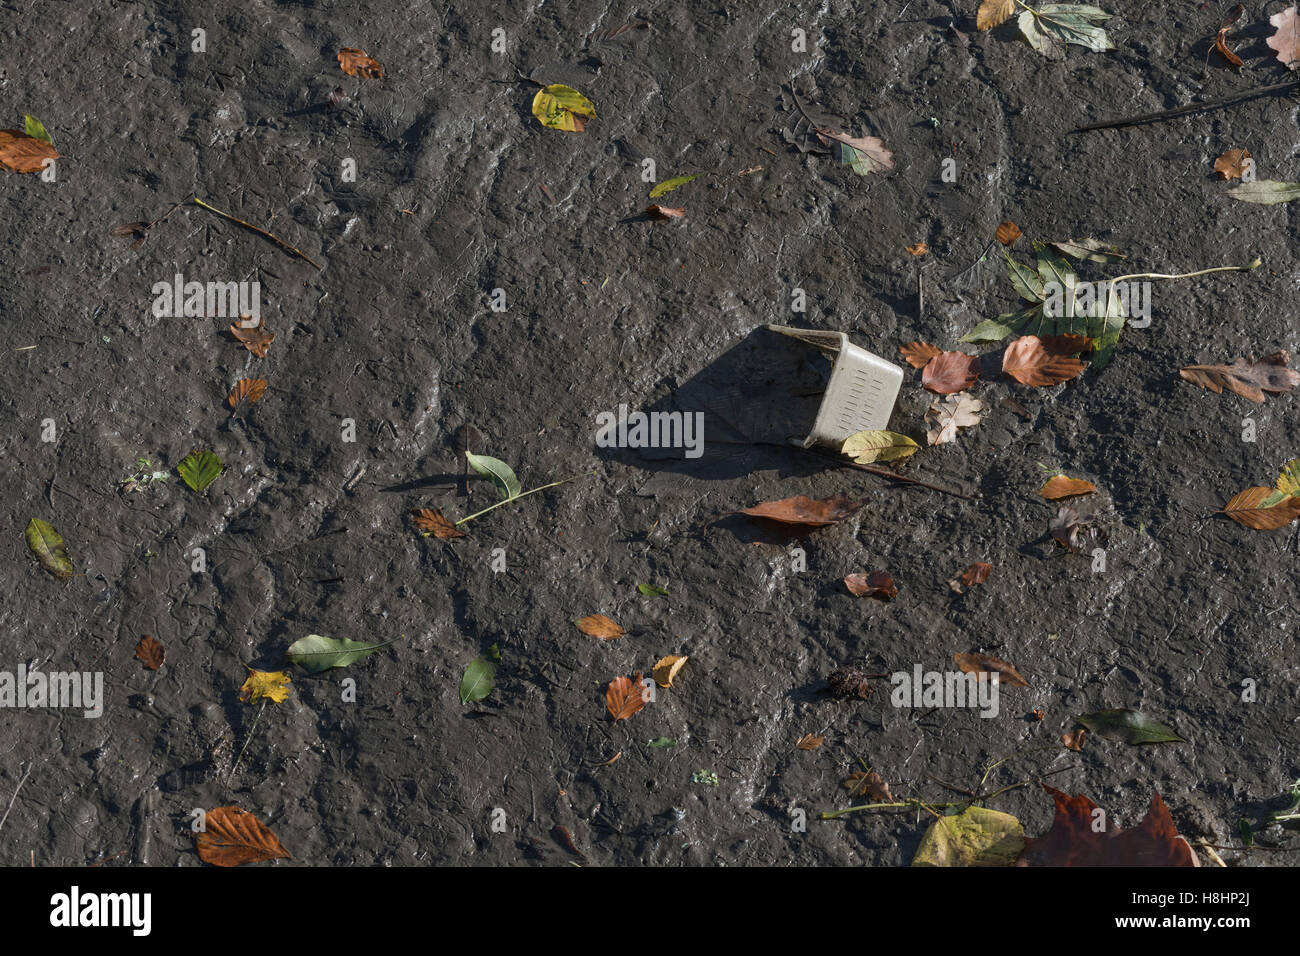 Discarded plastic container embedded in the muddy bed of an estuarine river [River Fowey] - Stock Image